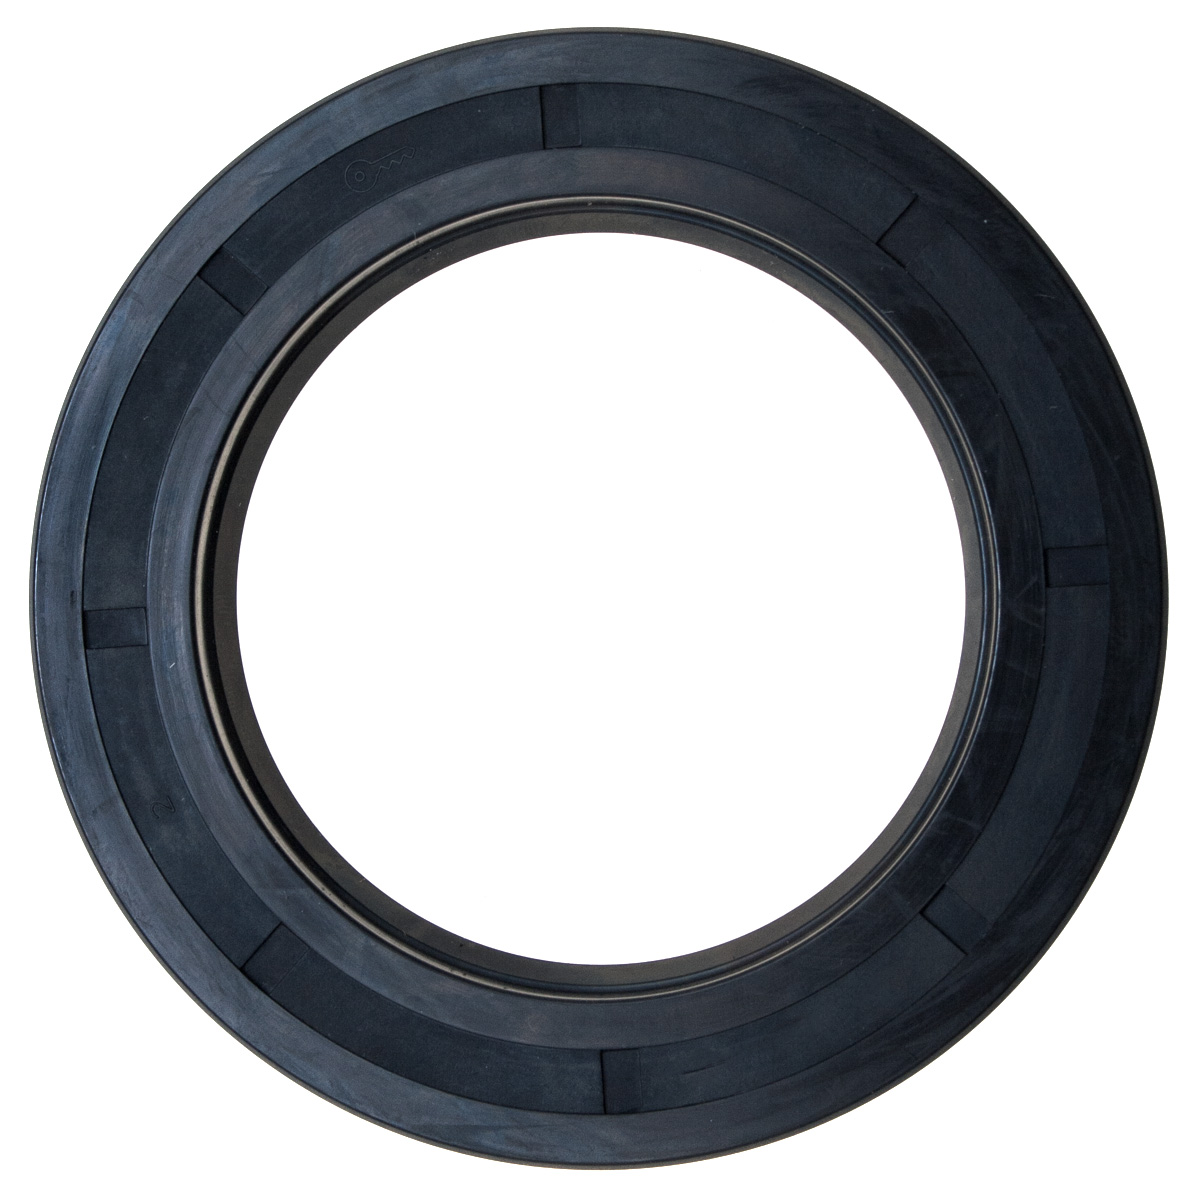 10 Radial-Wellendichtringe 15 x 35 x 5 mm DA NBR 70